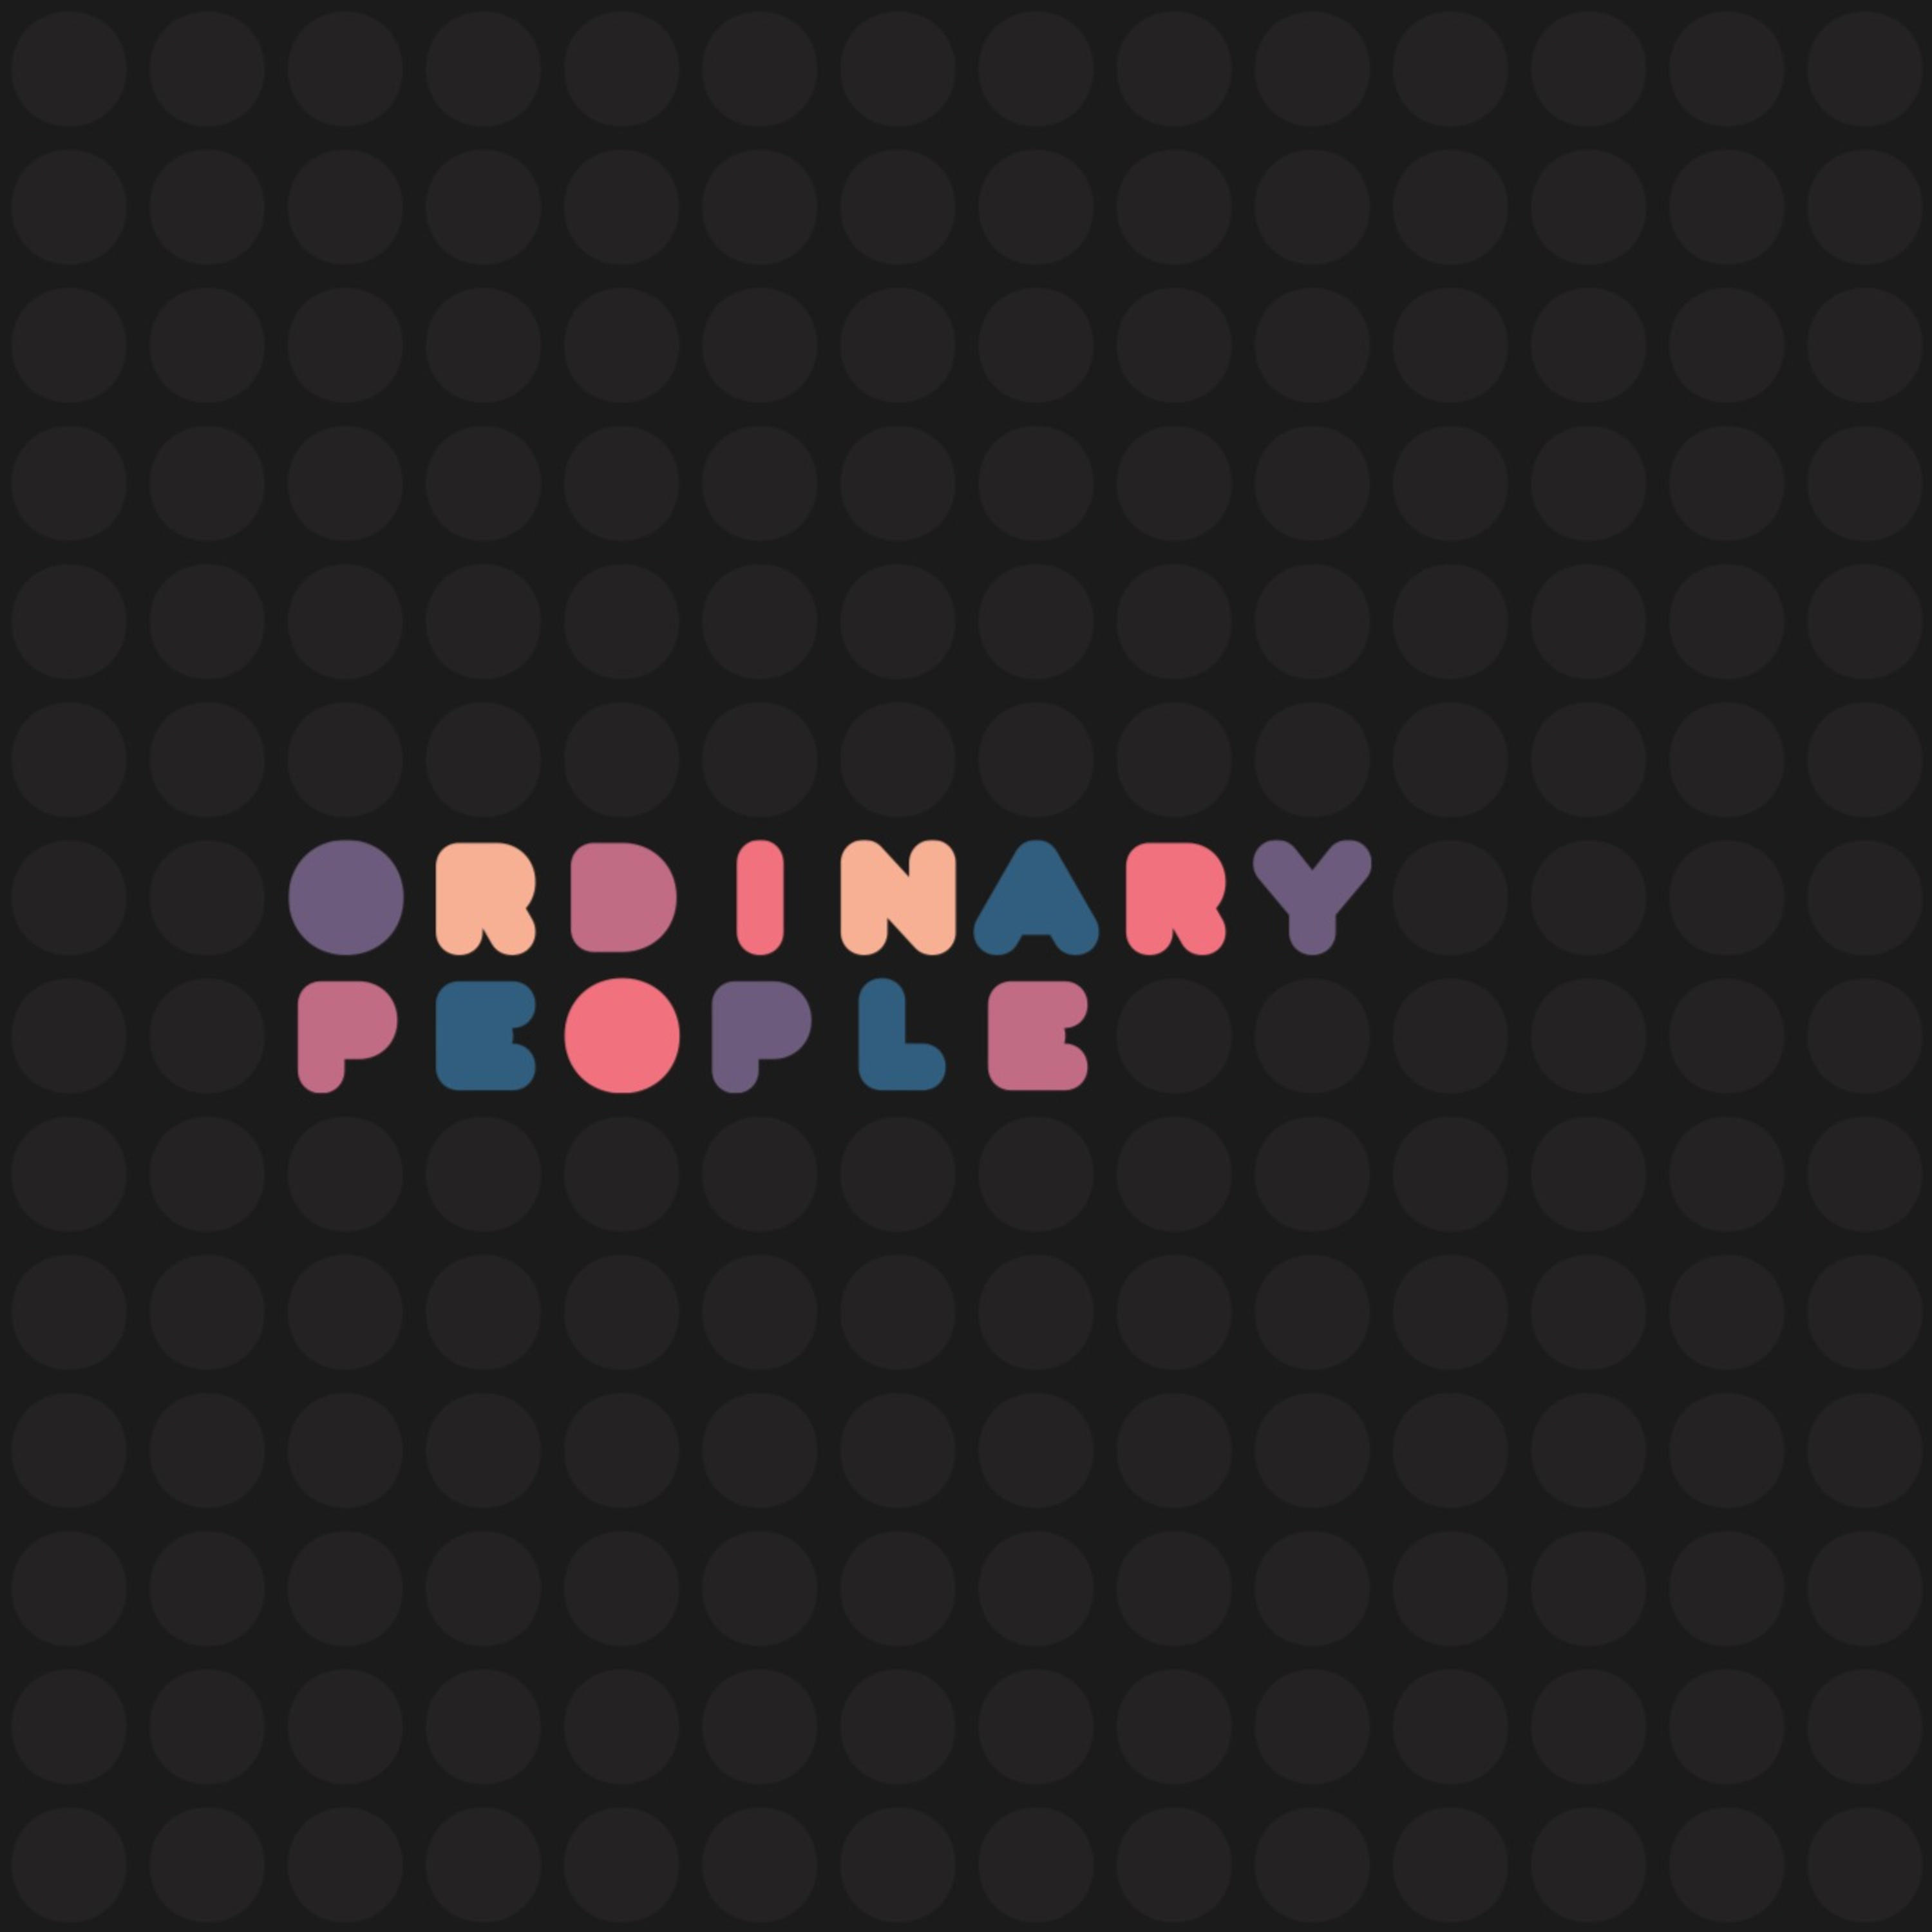 Ordinary People. A Podcast. podcast show image